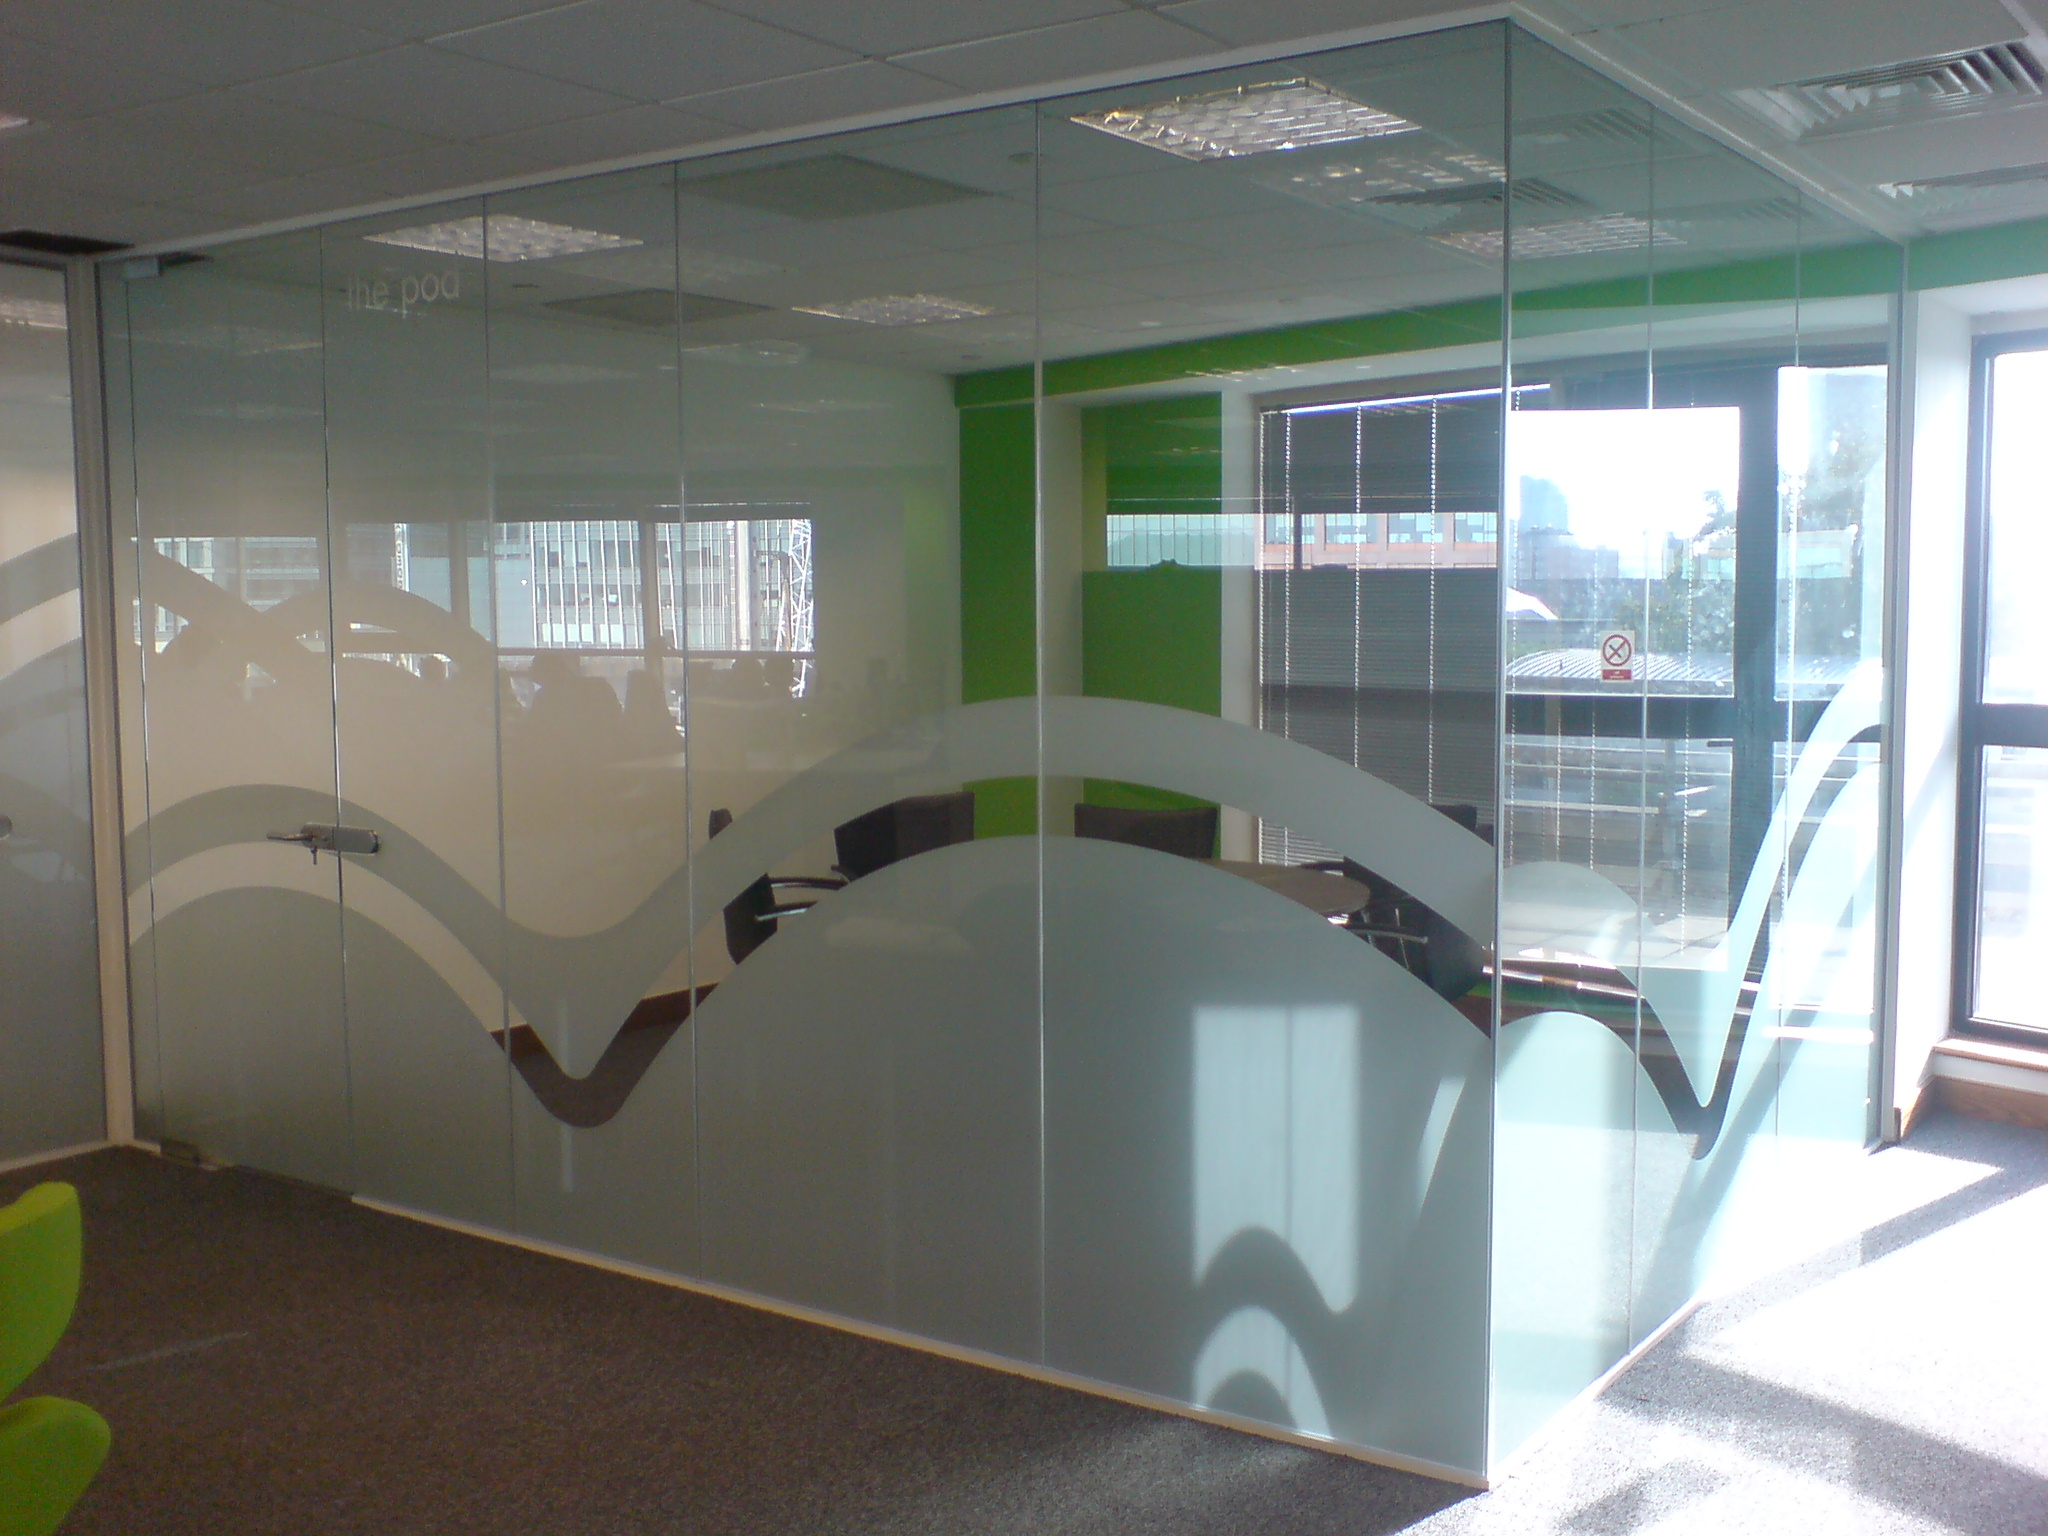 Frosted Vinyl Graphics Etched Logos Office Doors Windows